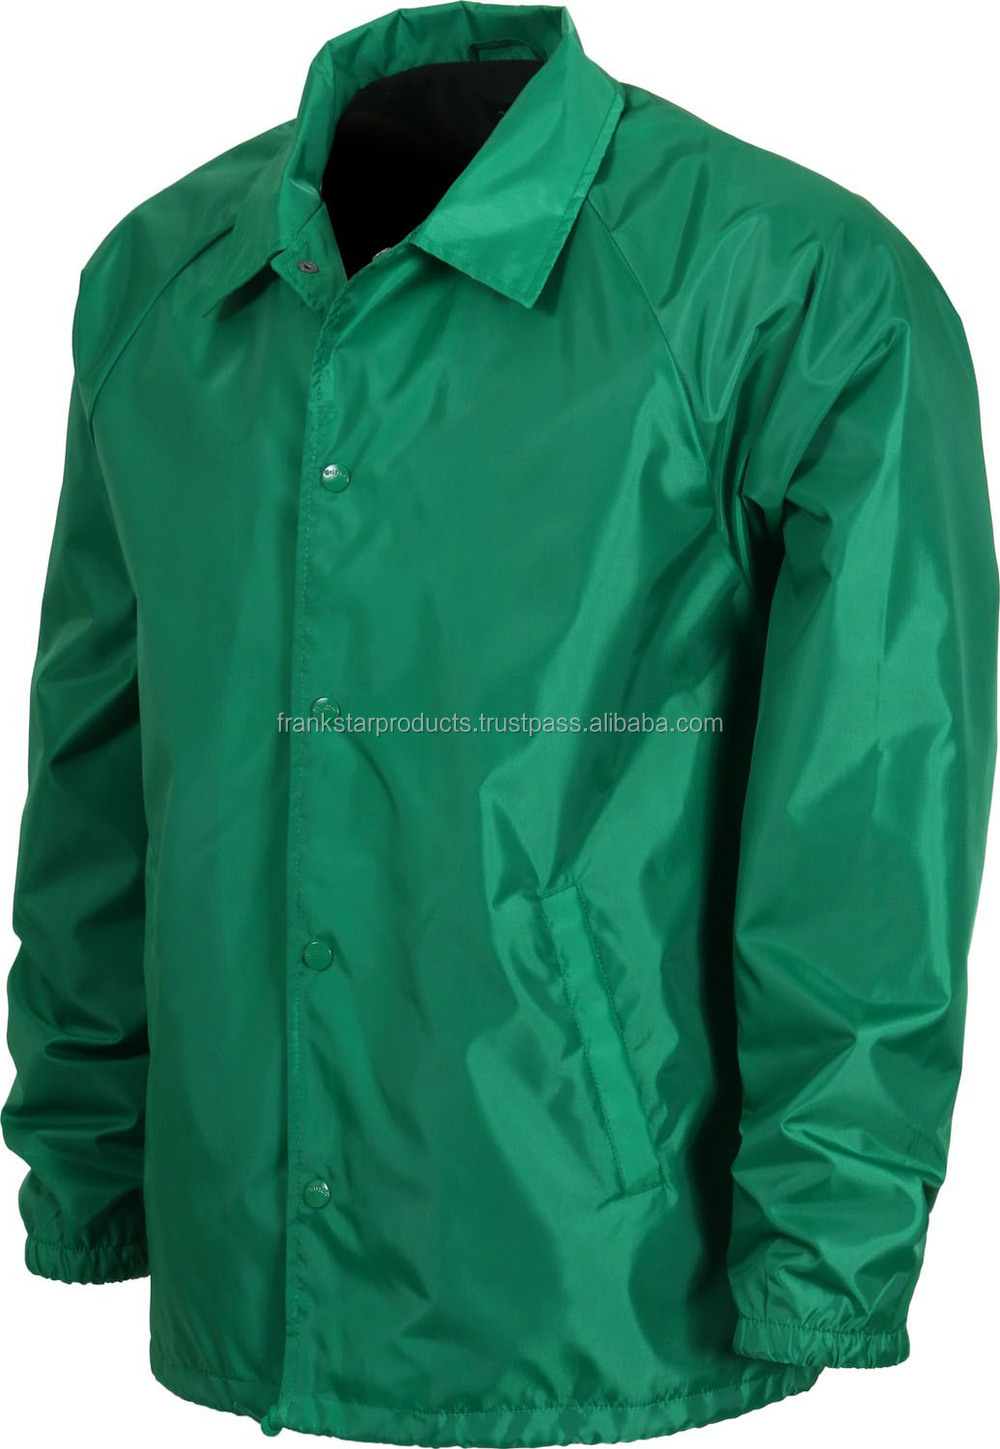 New Custom Made Jacket Polyester / Nylon Coach Jacket Water Proof ...